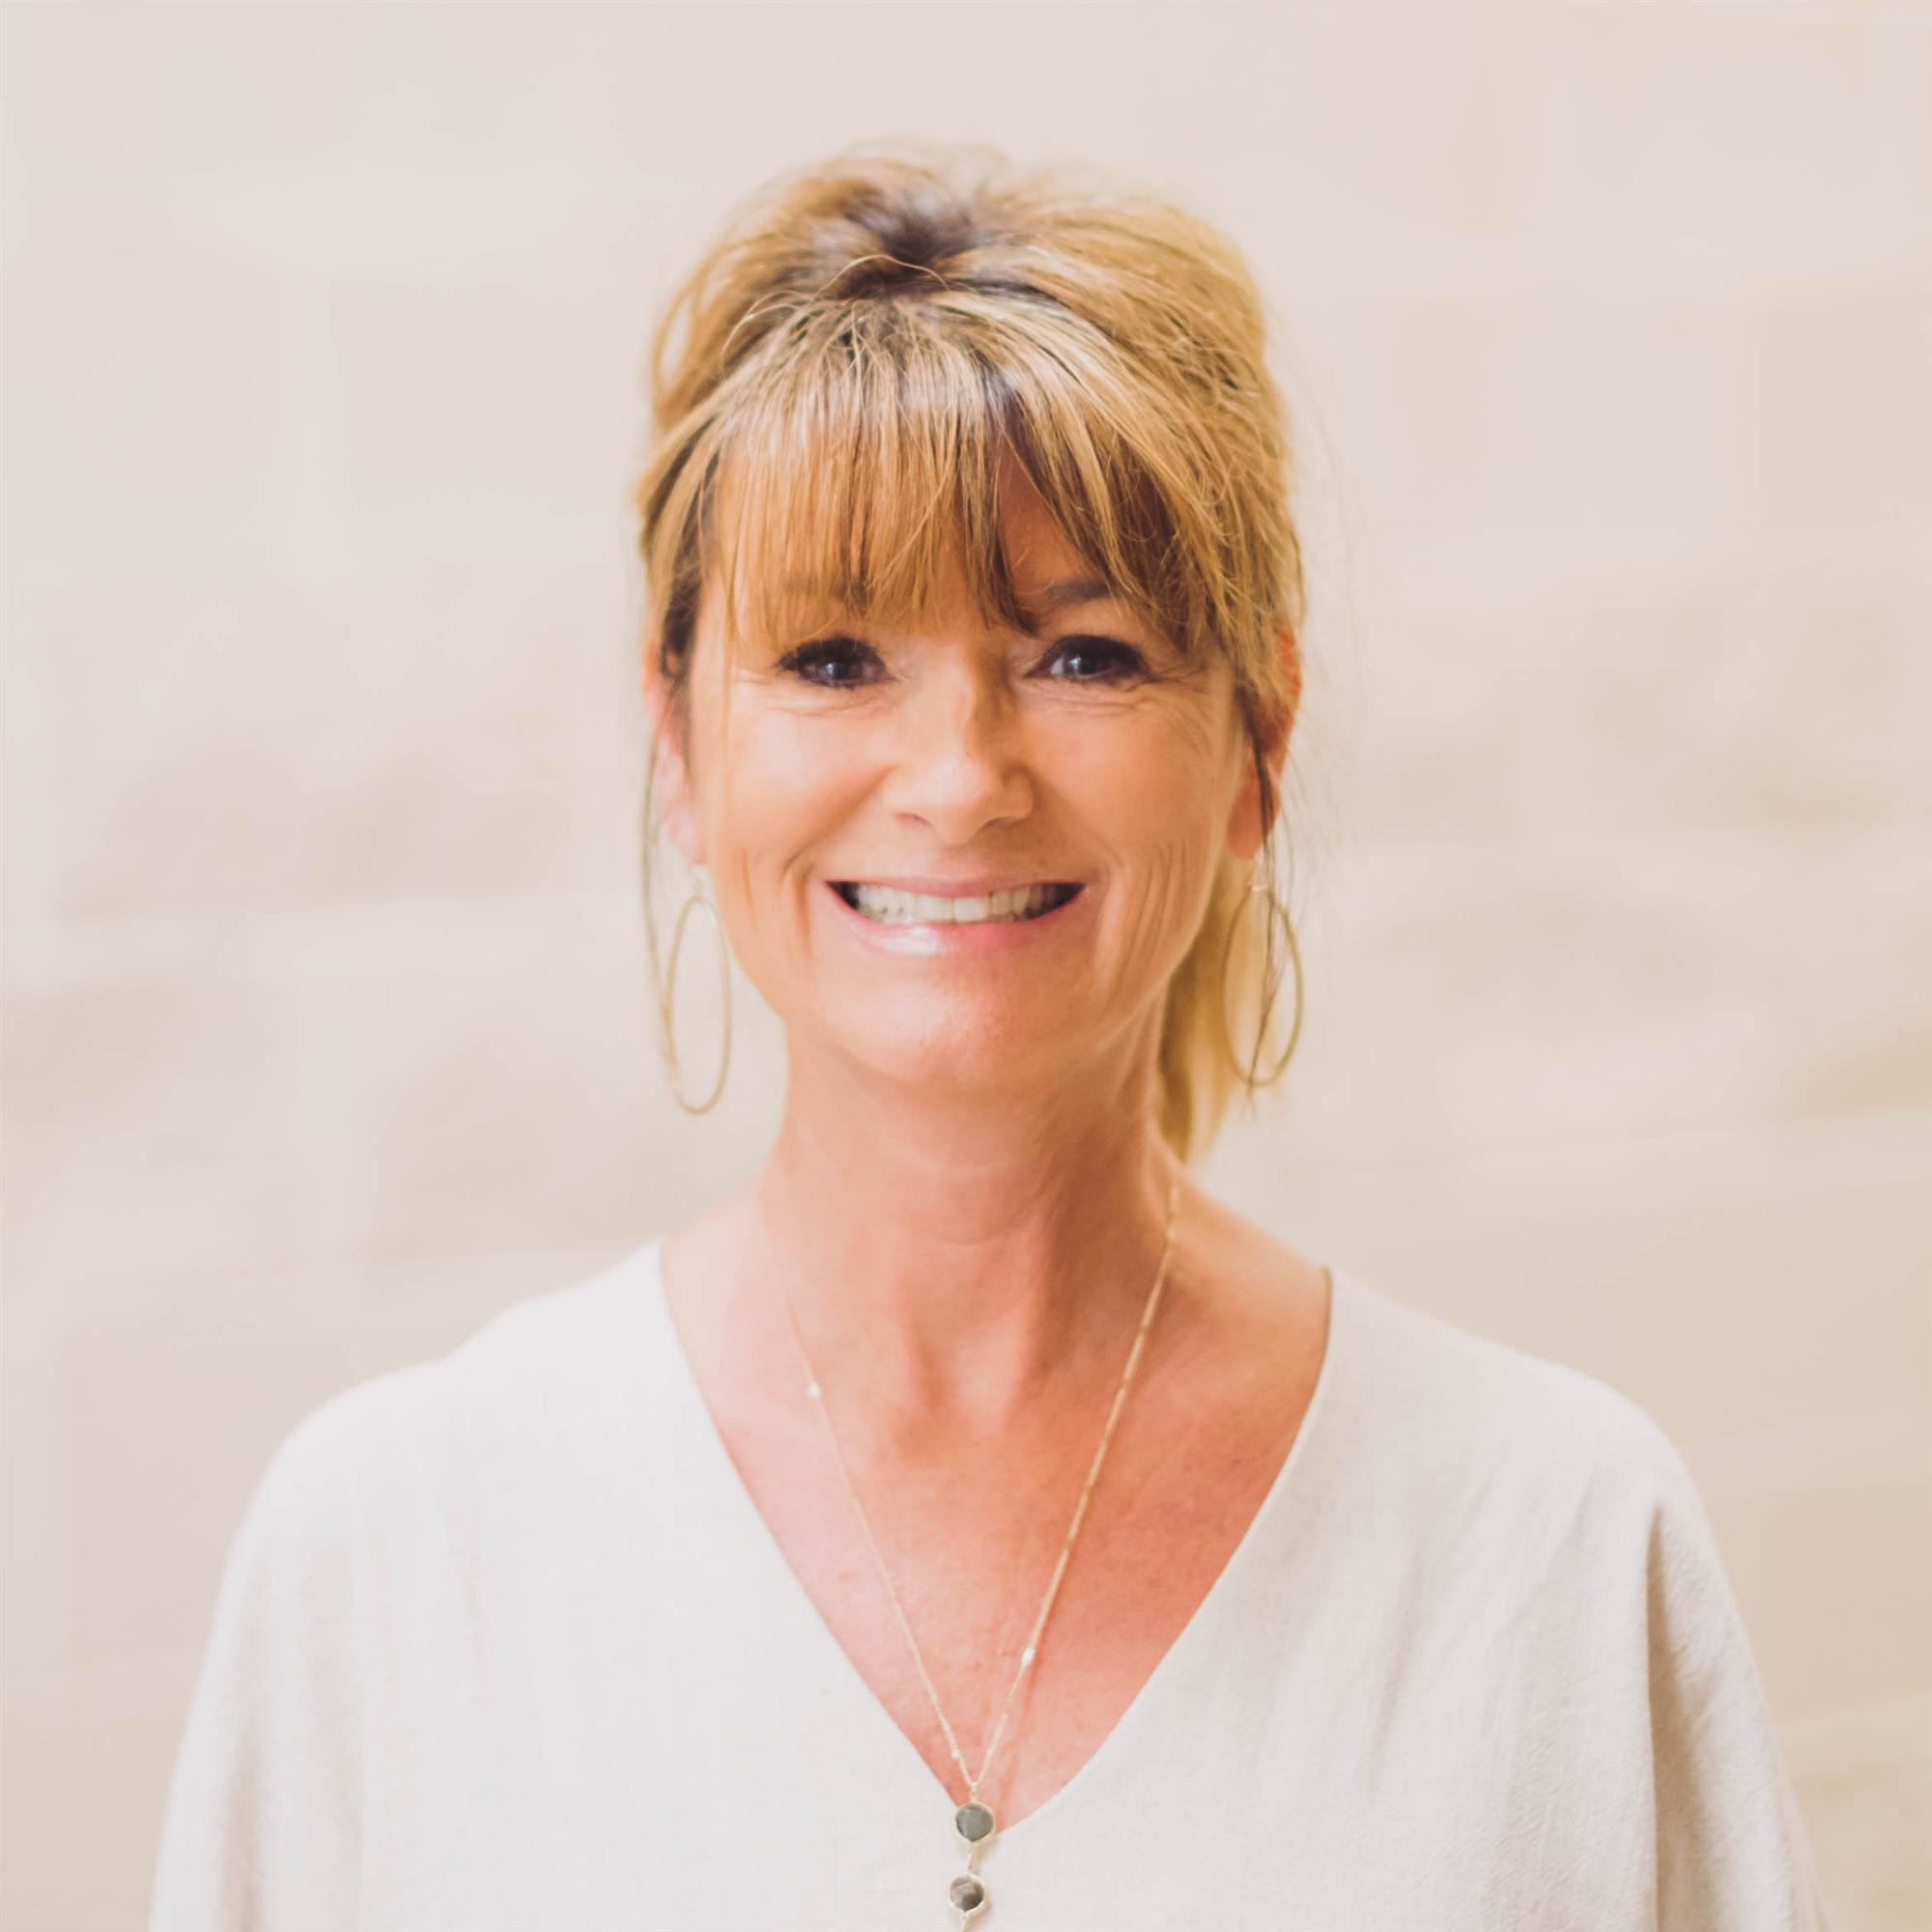 Lori Sowers named Indian Creek Elementary Principal on July 10 2019.